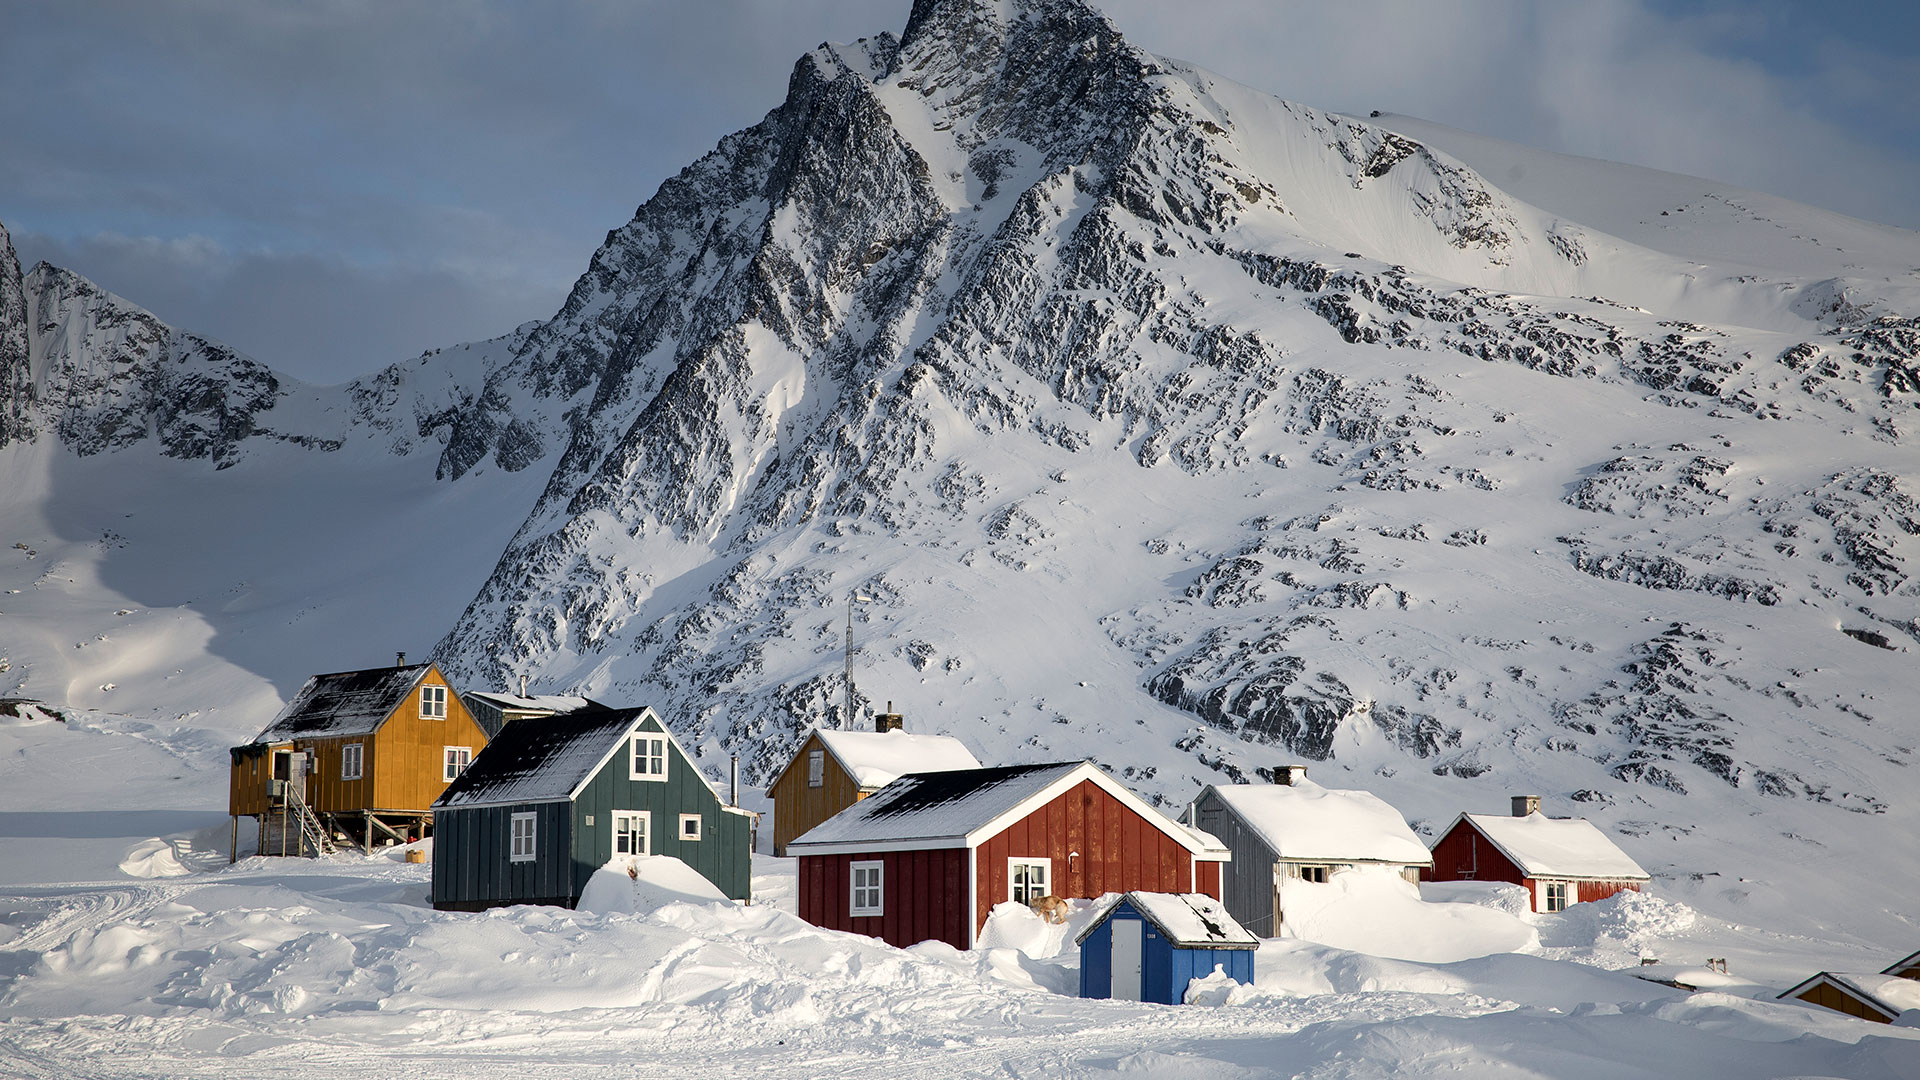 Winter Travel To Greenland : Winter holiday Packages : Nordic Visitor